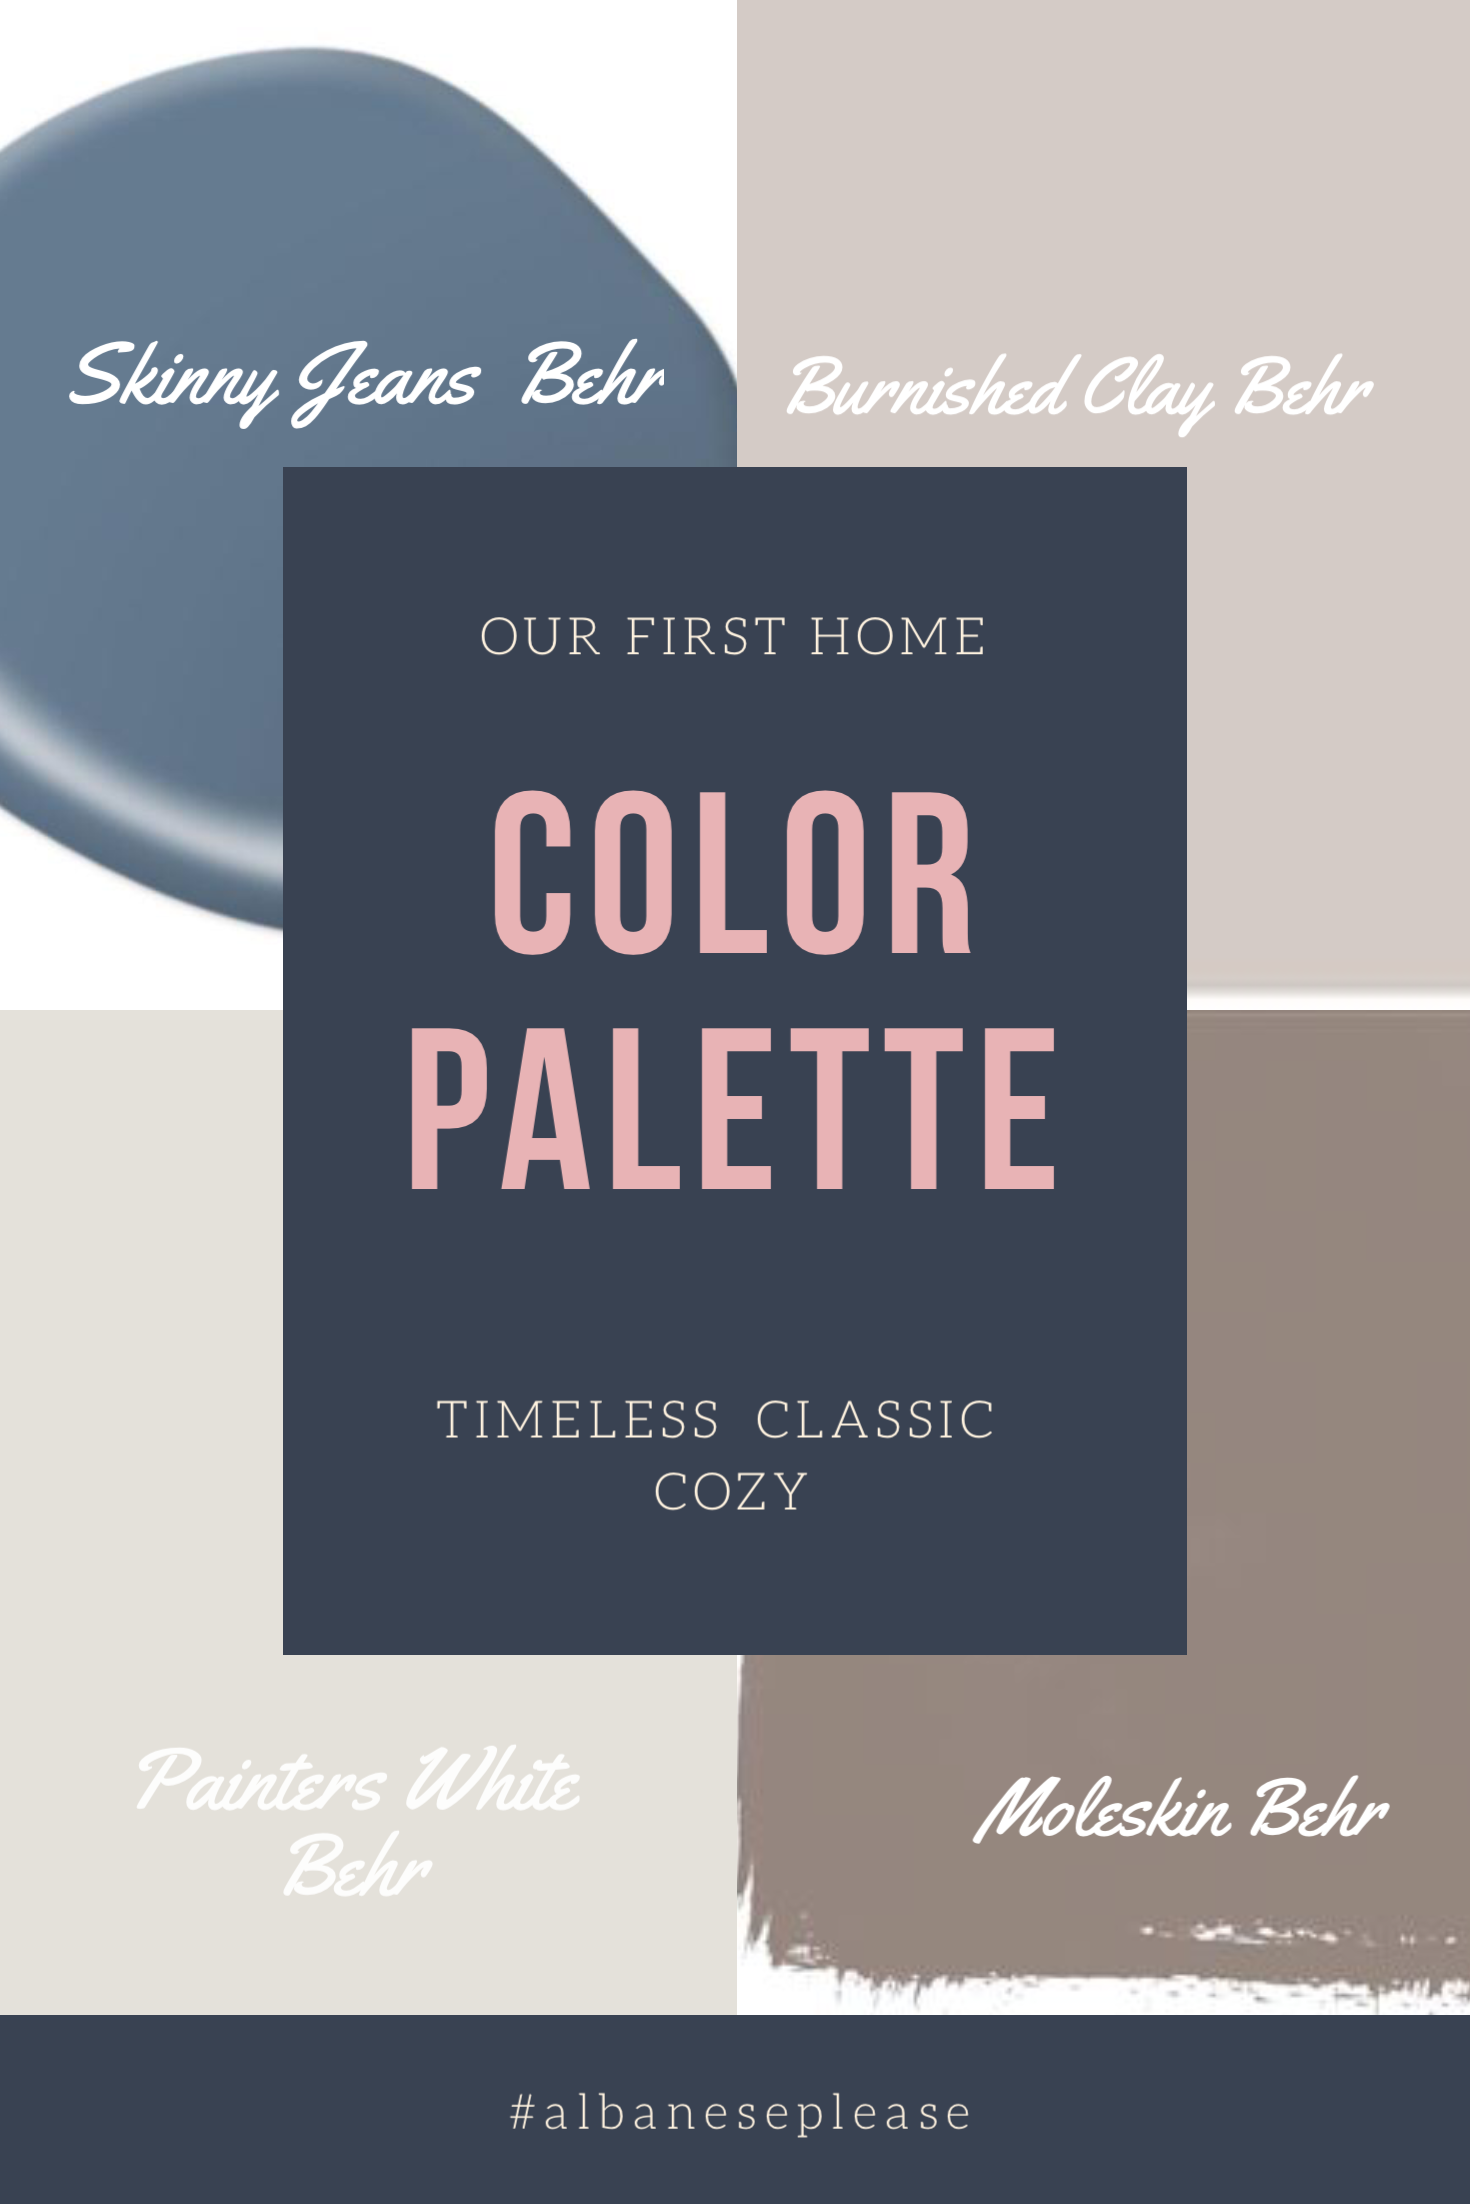 Our First Home Color Palette 2017 Timeless Clic Cozy